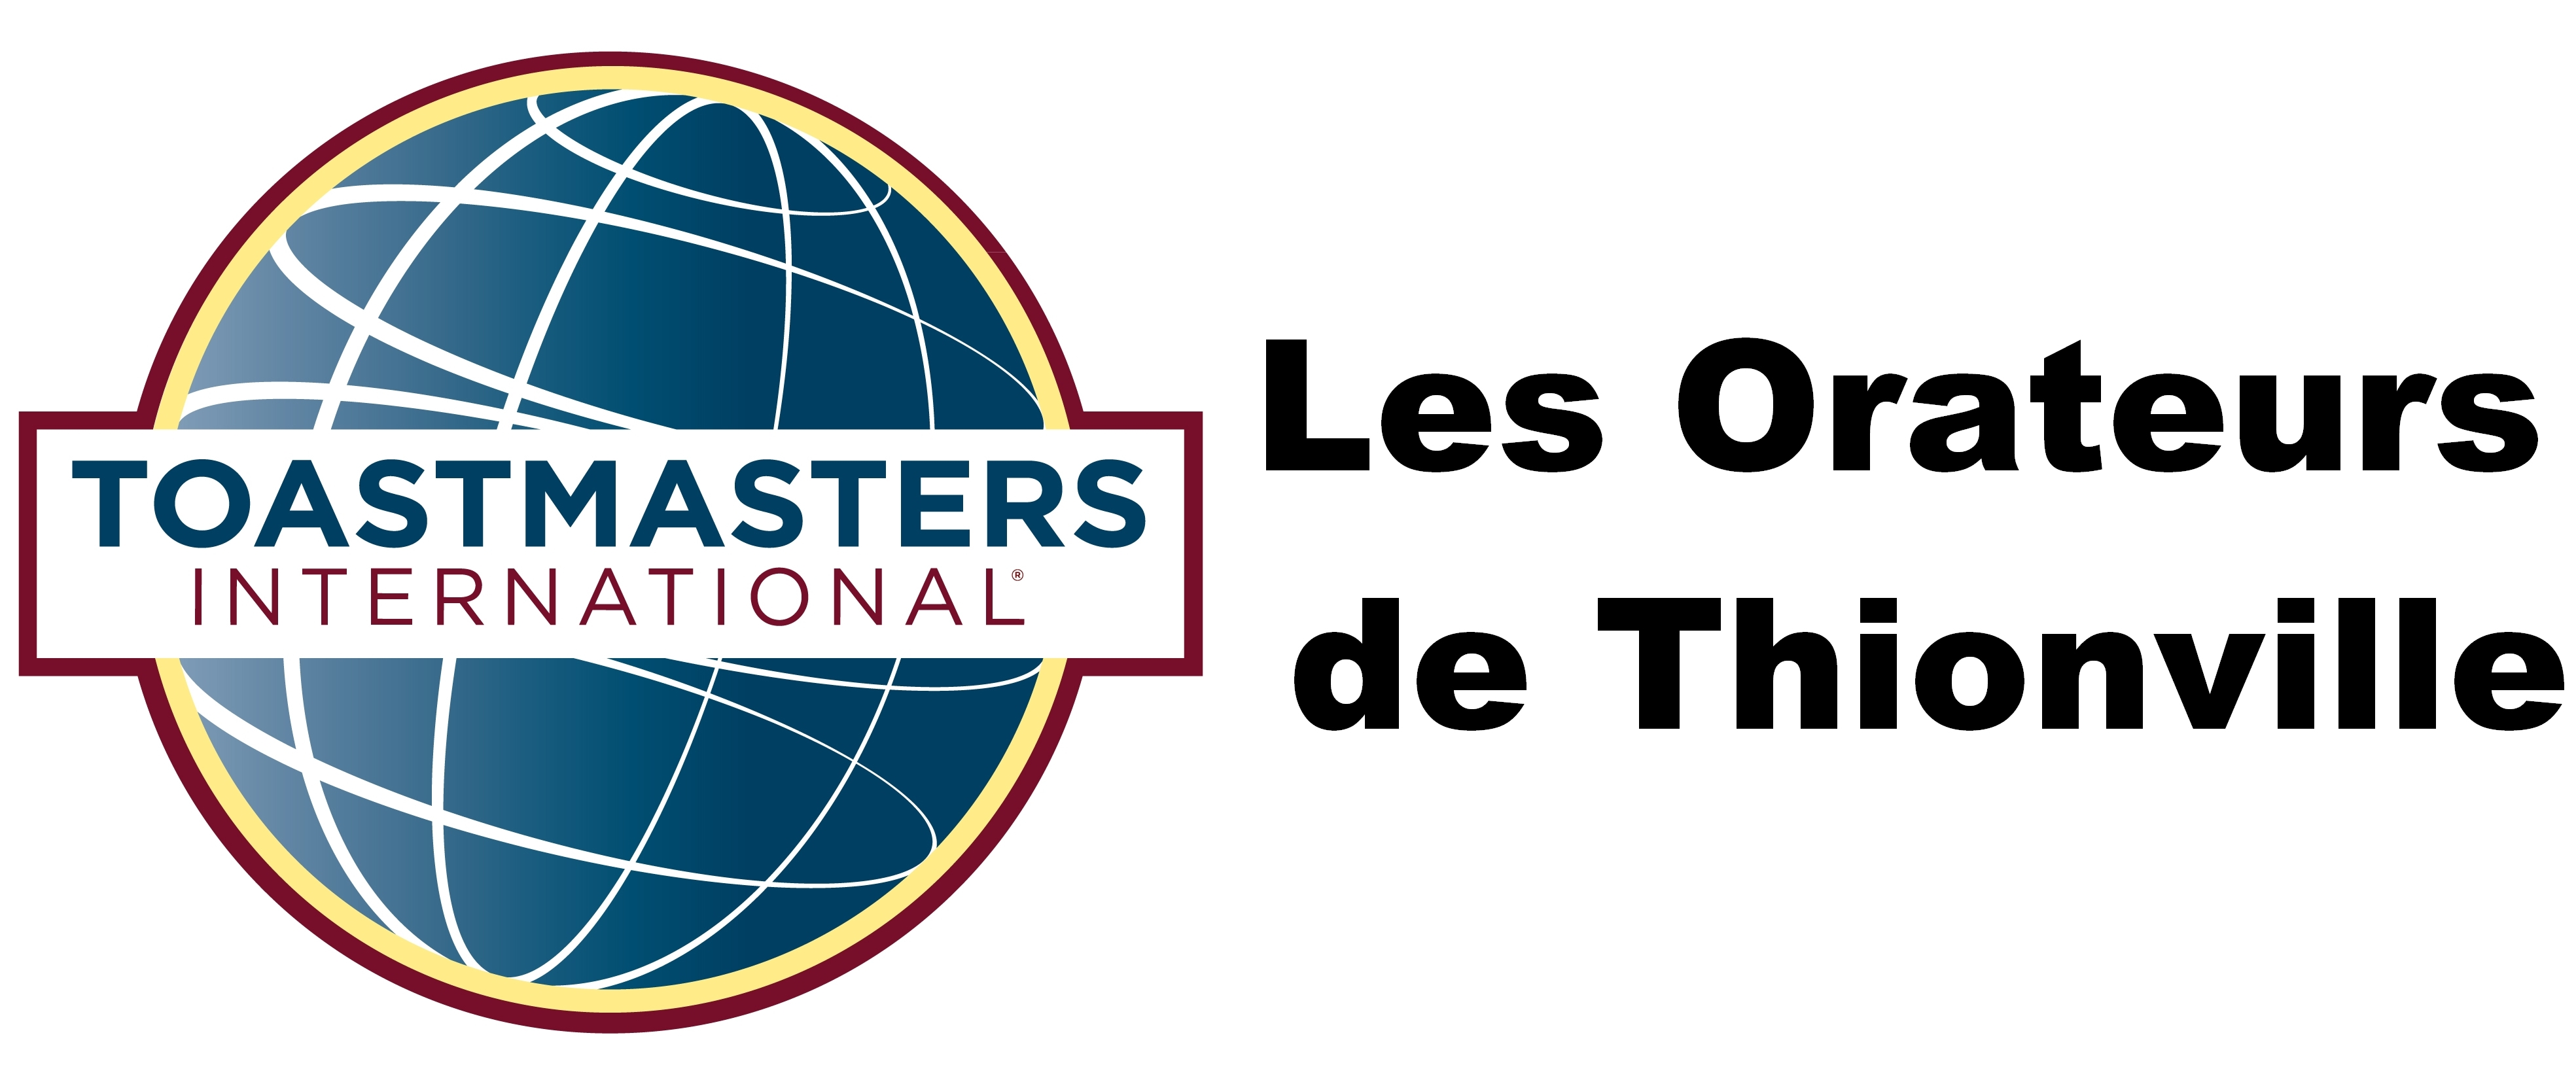 les orateurs de thionville apprendre parler en public avec la m thode toastmasters. Black Bedroom Furniture Sets. Home Design Ideas